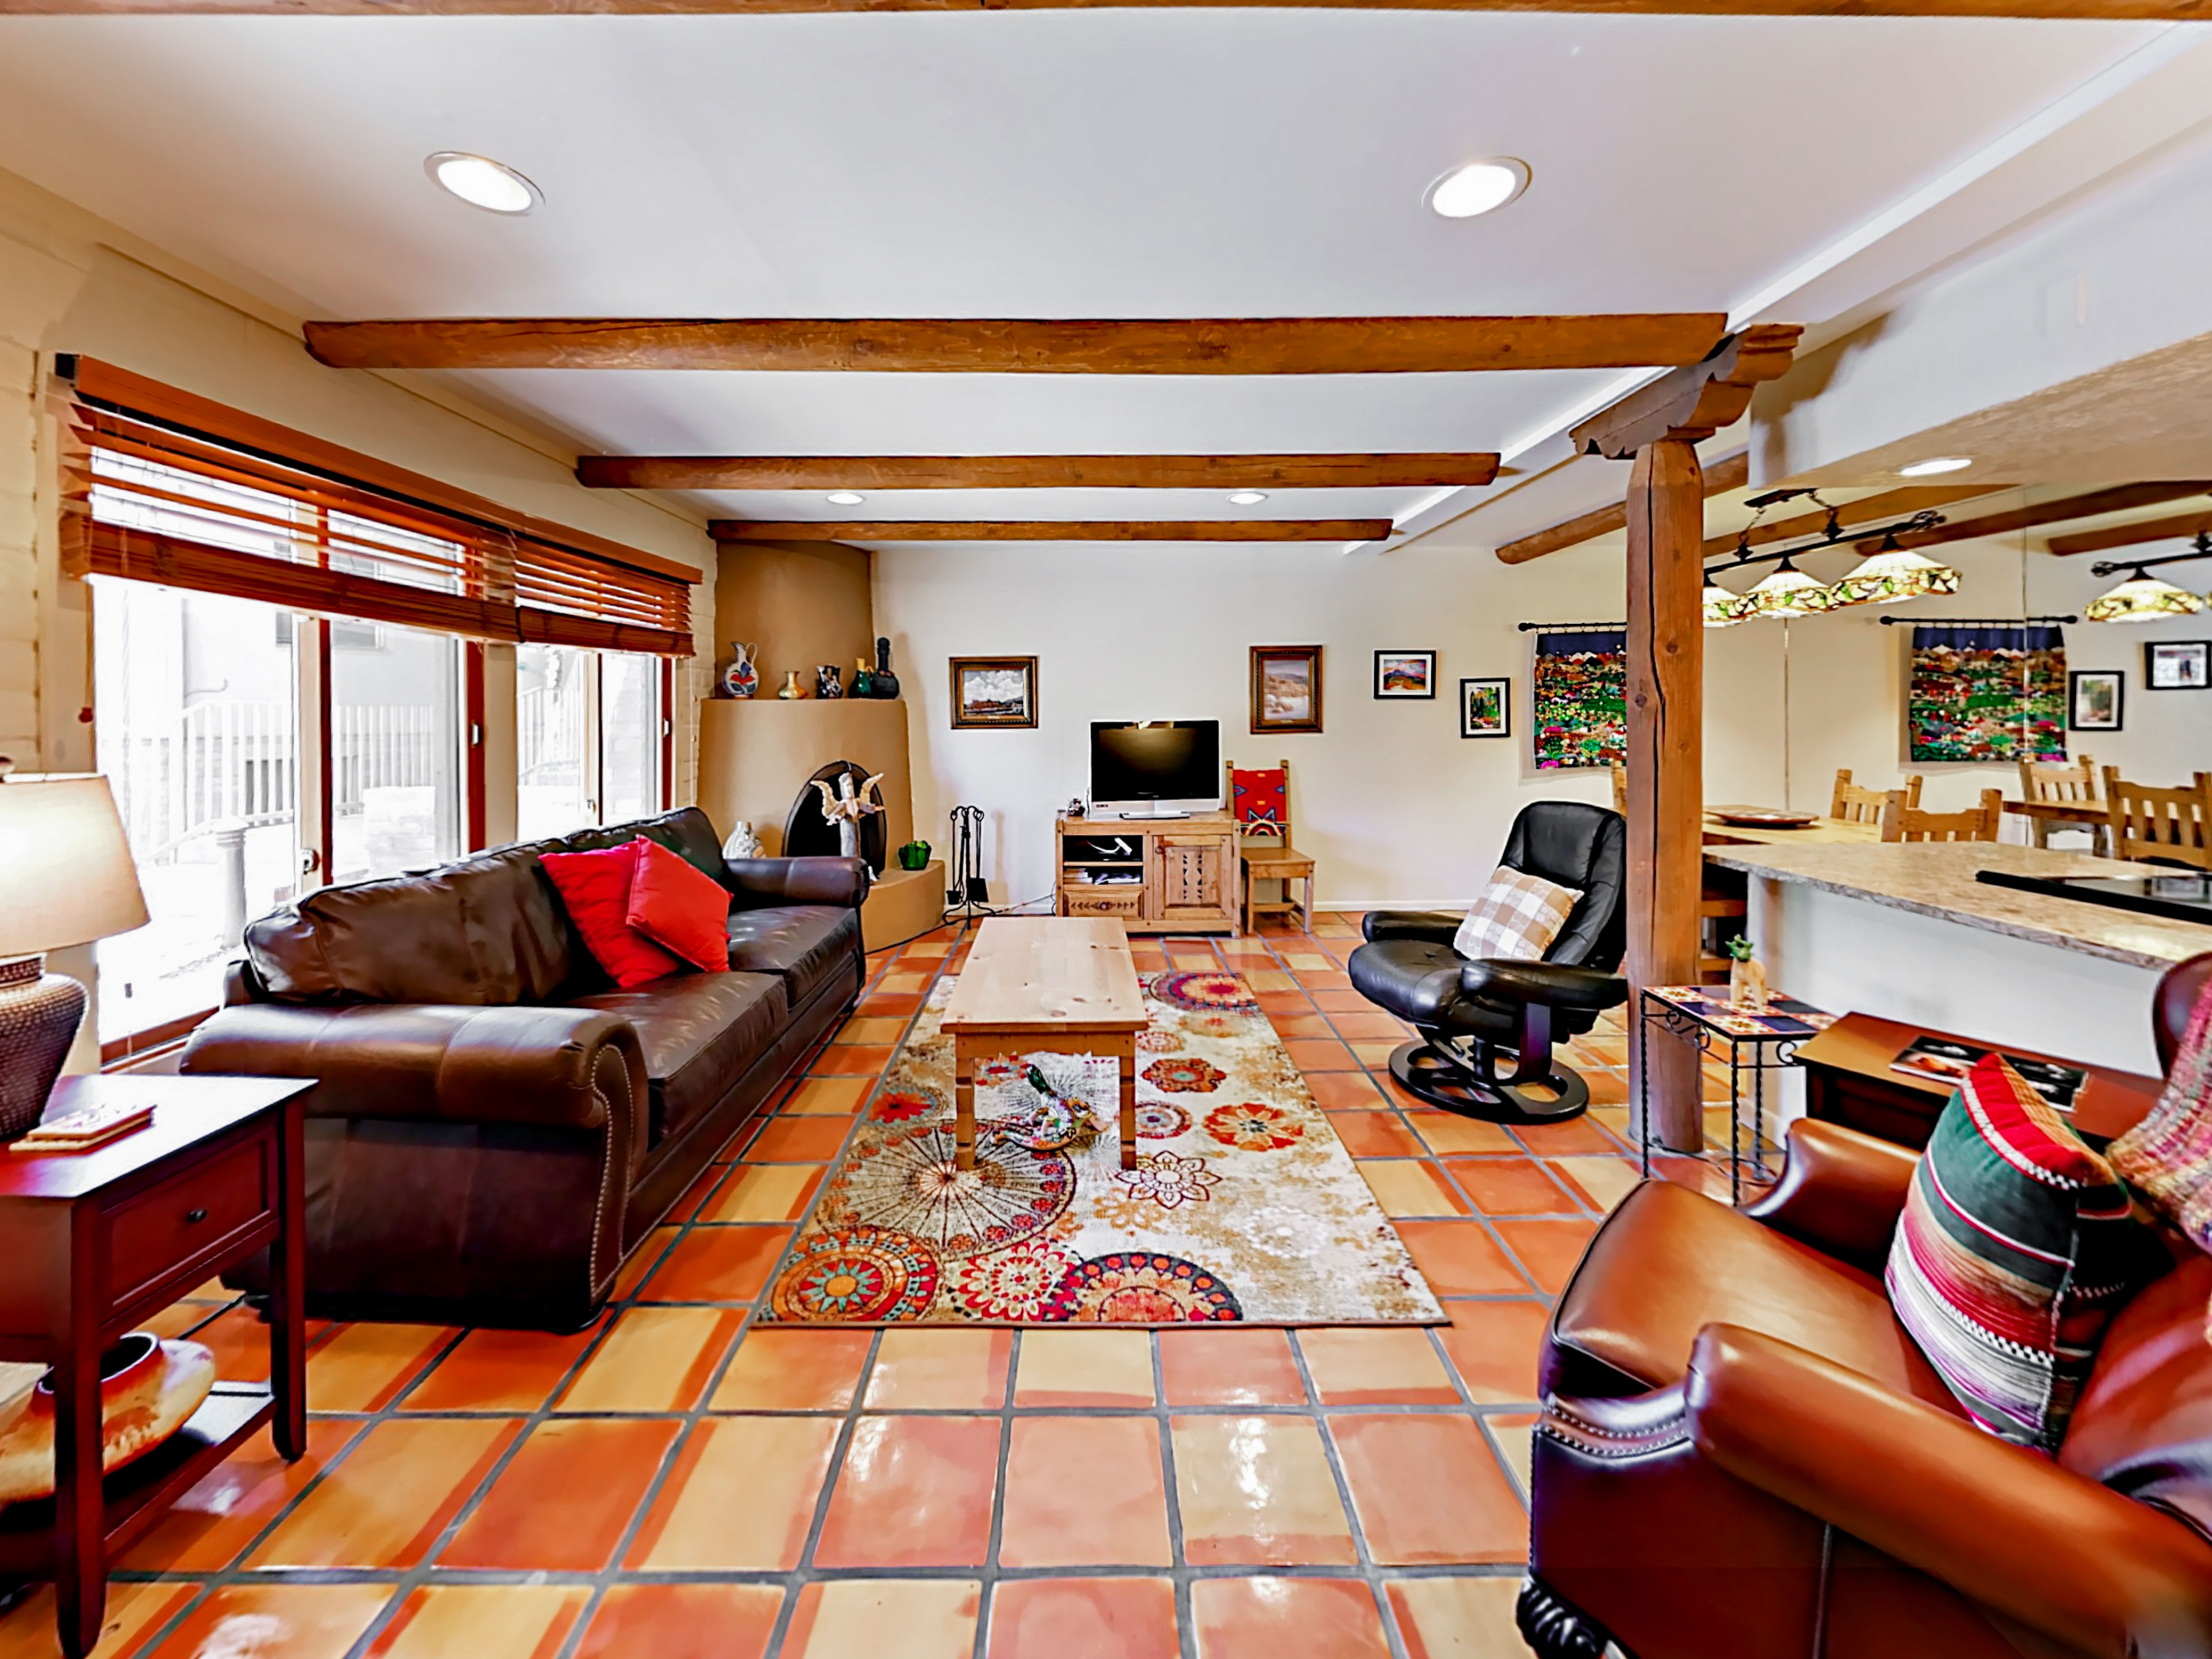 Santa Fe NM Vacation Rental Welcome to Sante